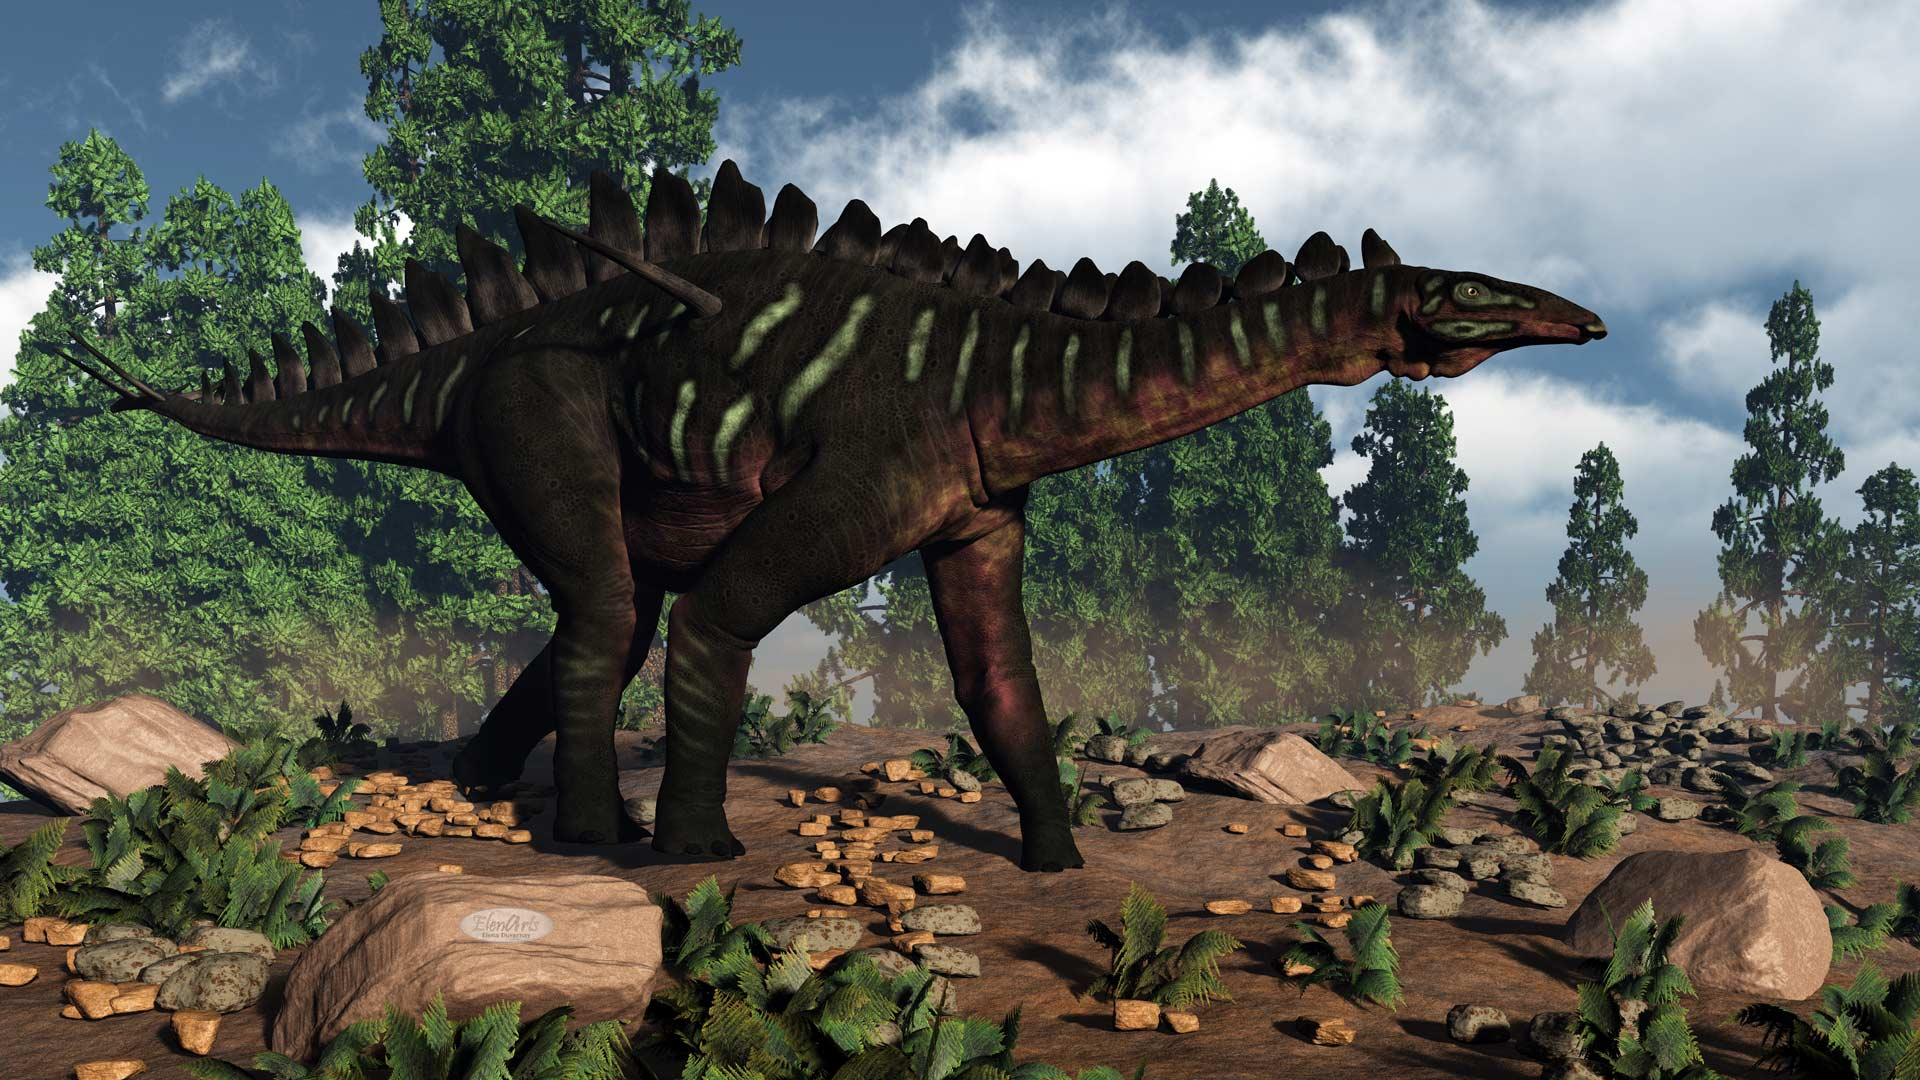 Miragaia dinosaur walking near wollemia pines by day - 3D render